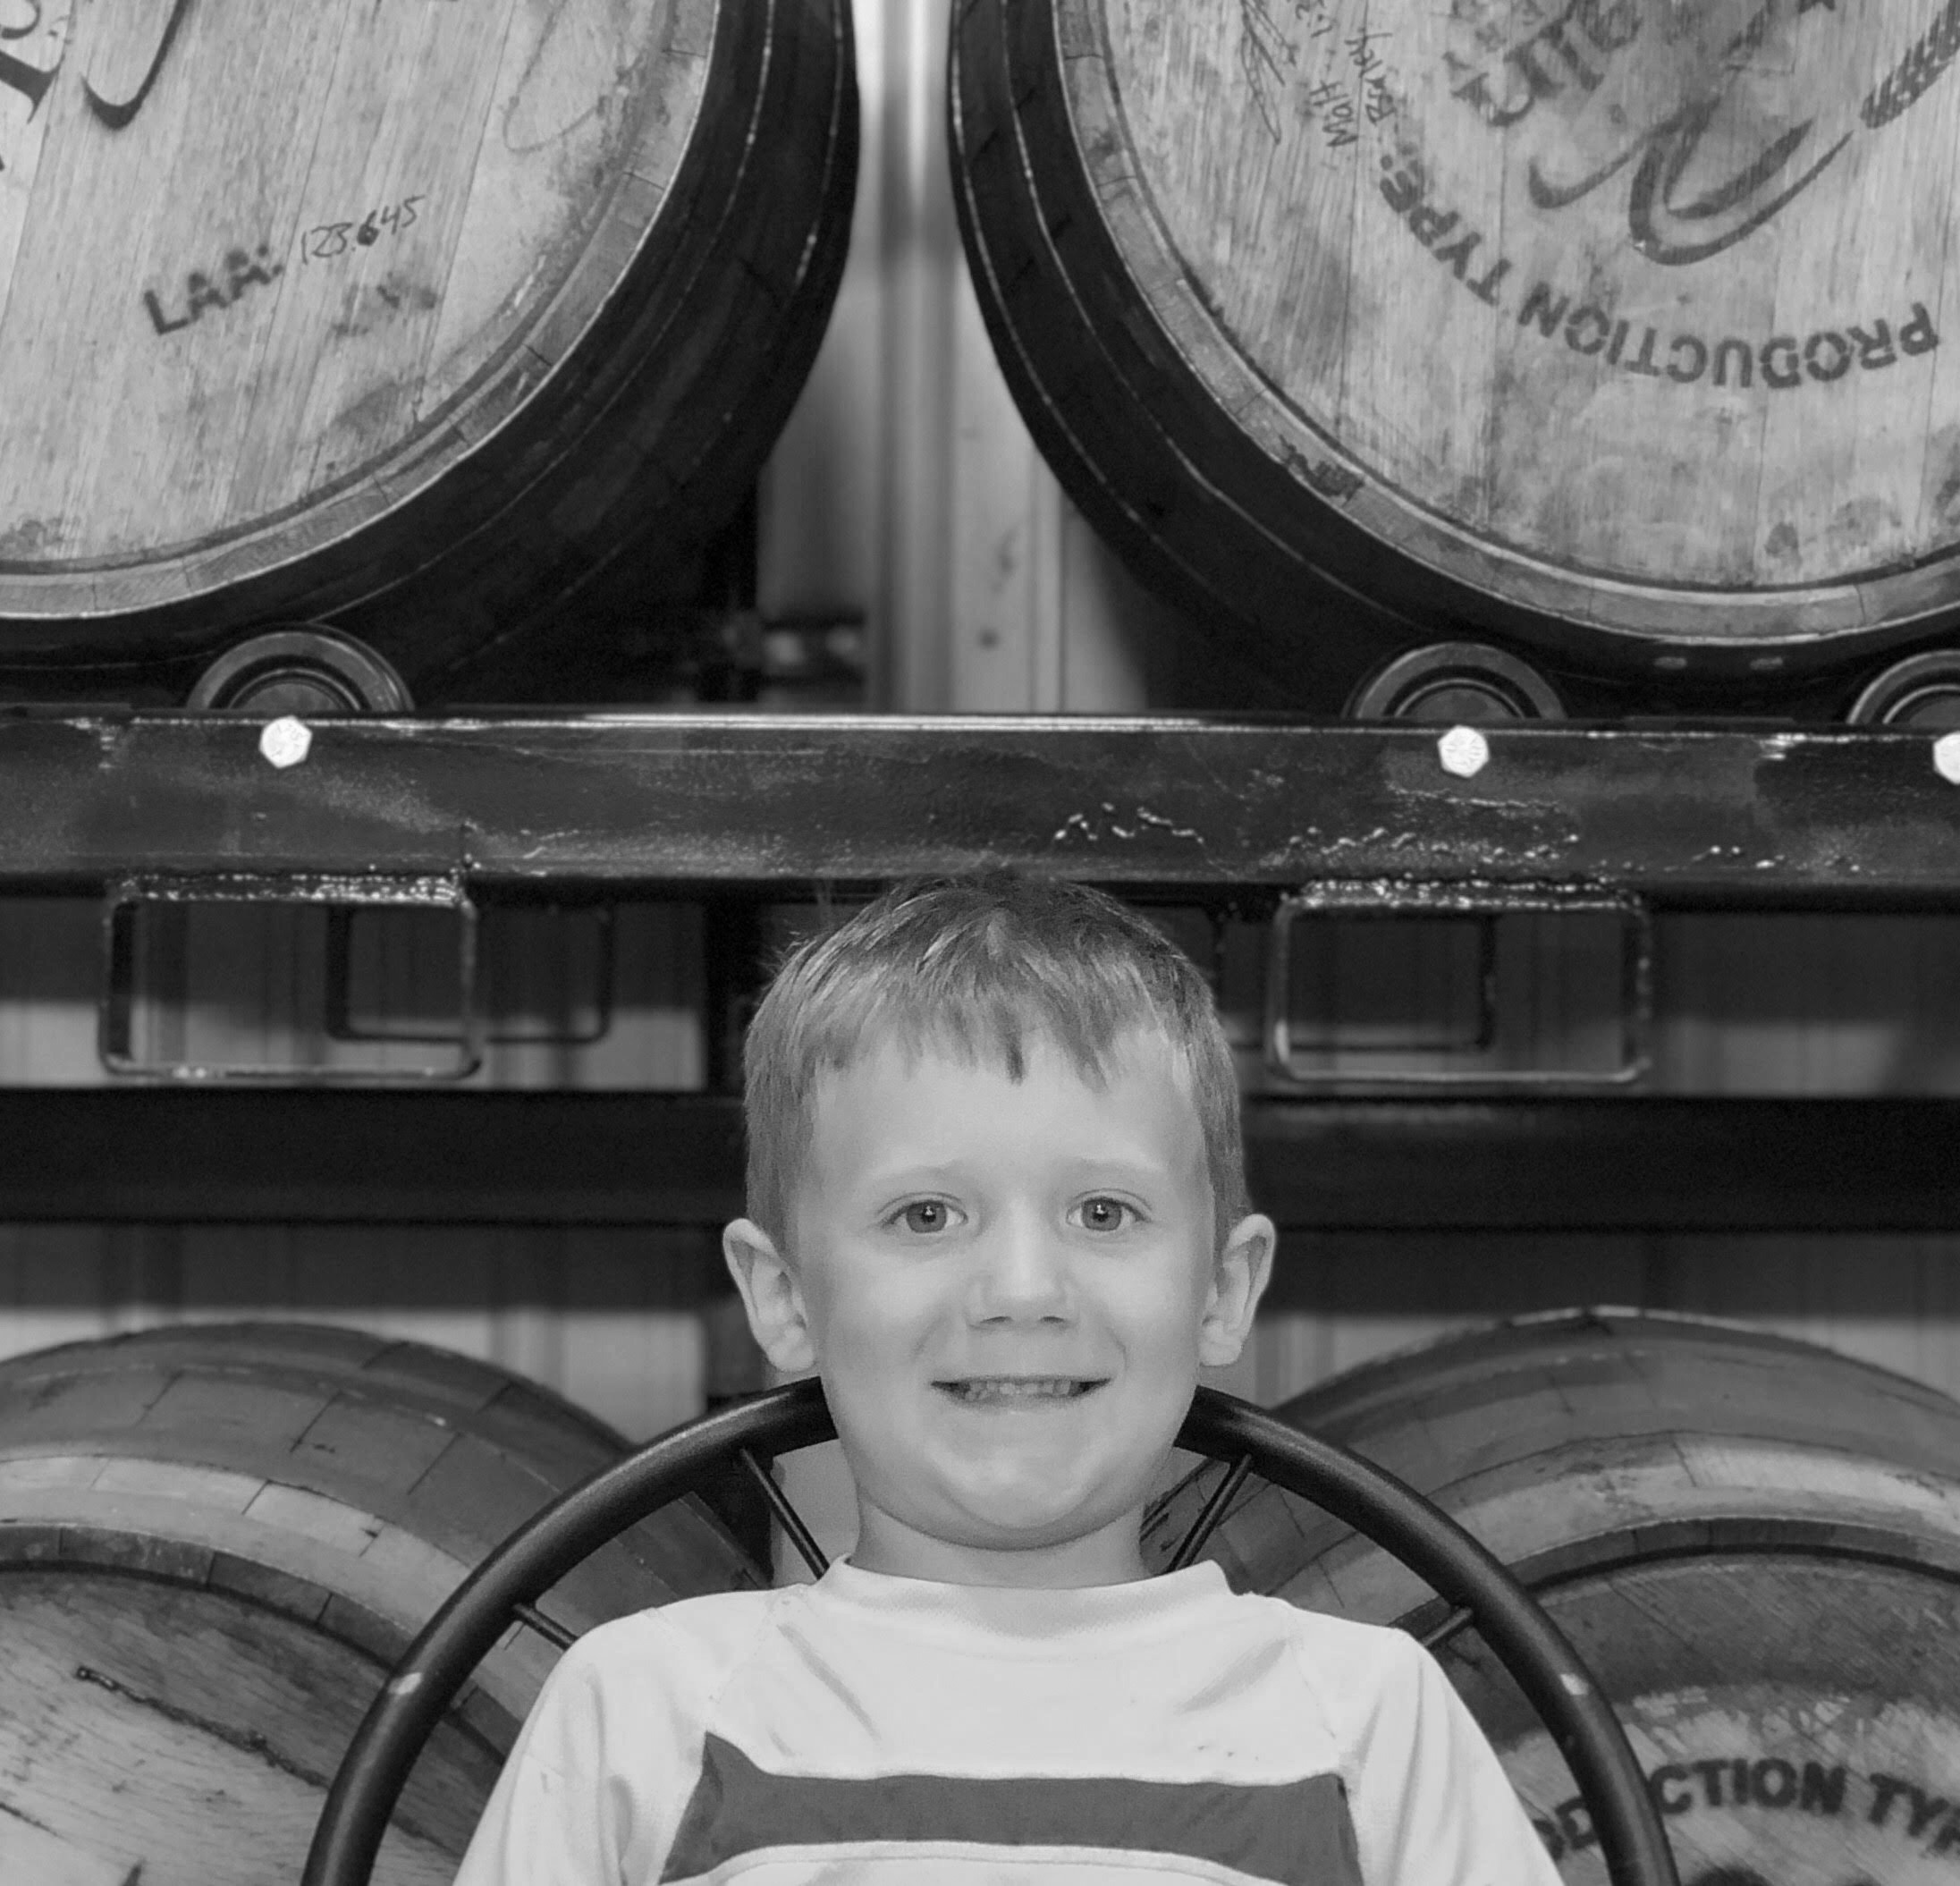 GRIFFIN SCHMIDT   Griffin is the youngest Schmidt child and arrived the same year Last Mountain Distillery moved into their new building in 2013. He took his first steps at Last Mountain and can also be found on the bottling line occasionally in the summer months.